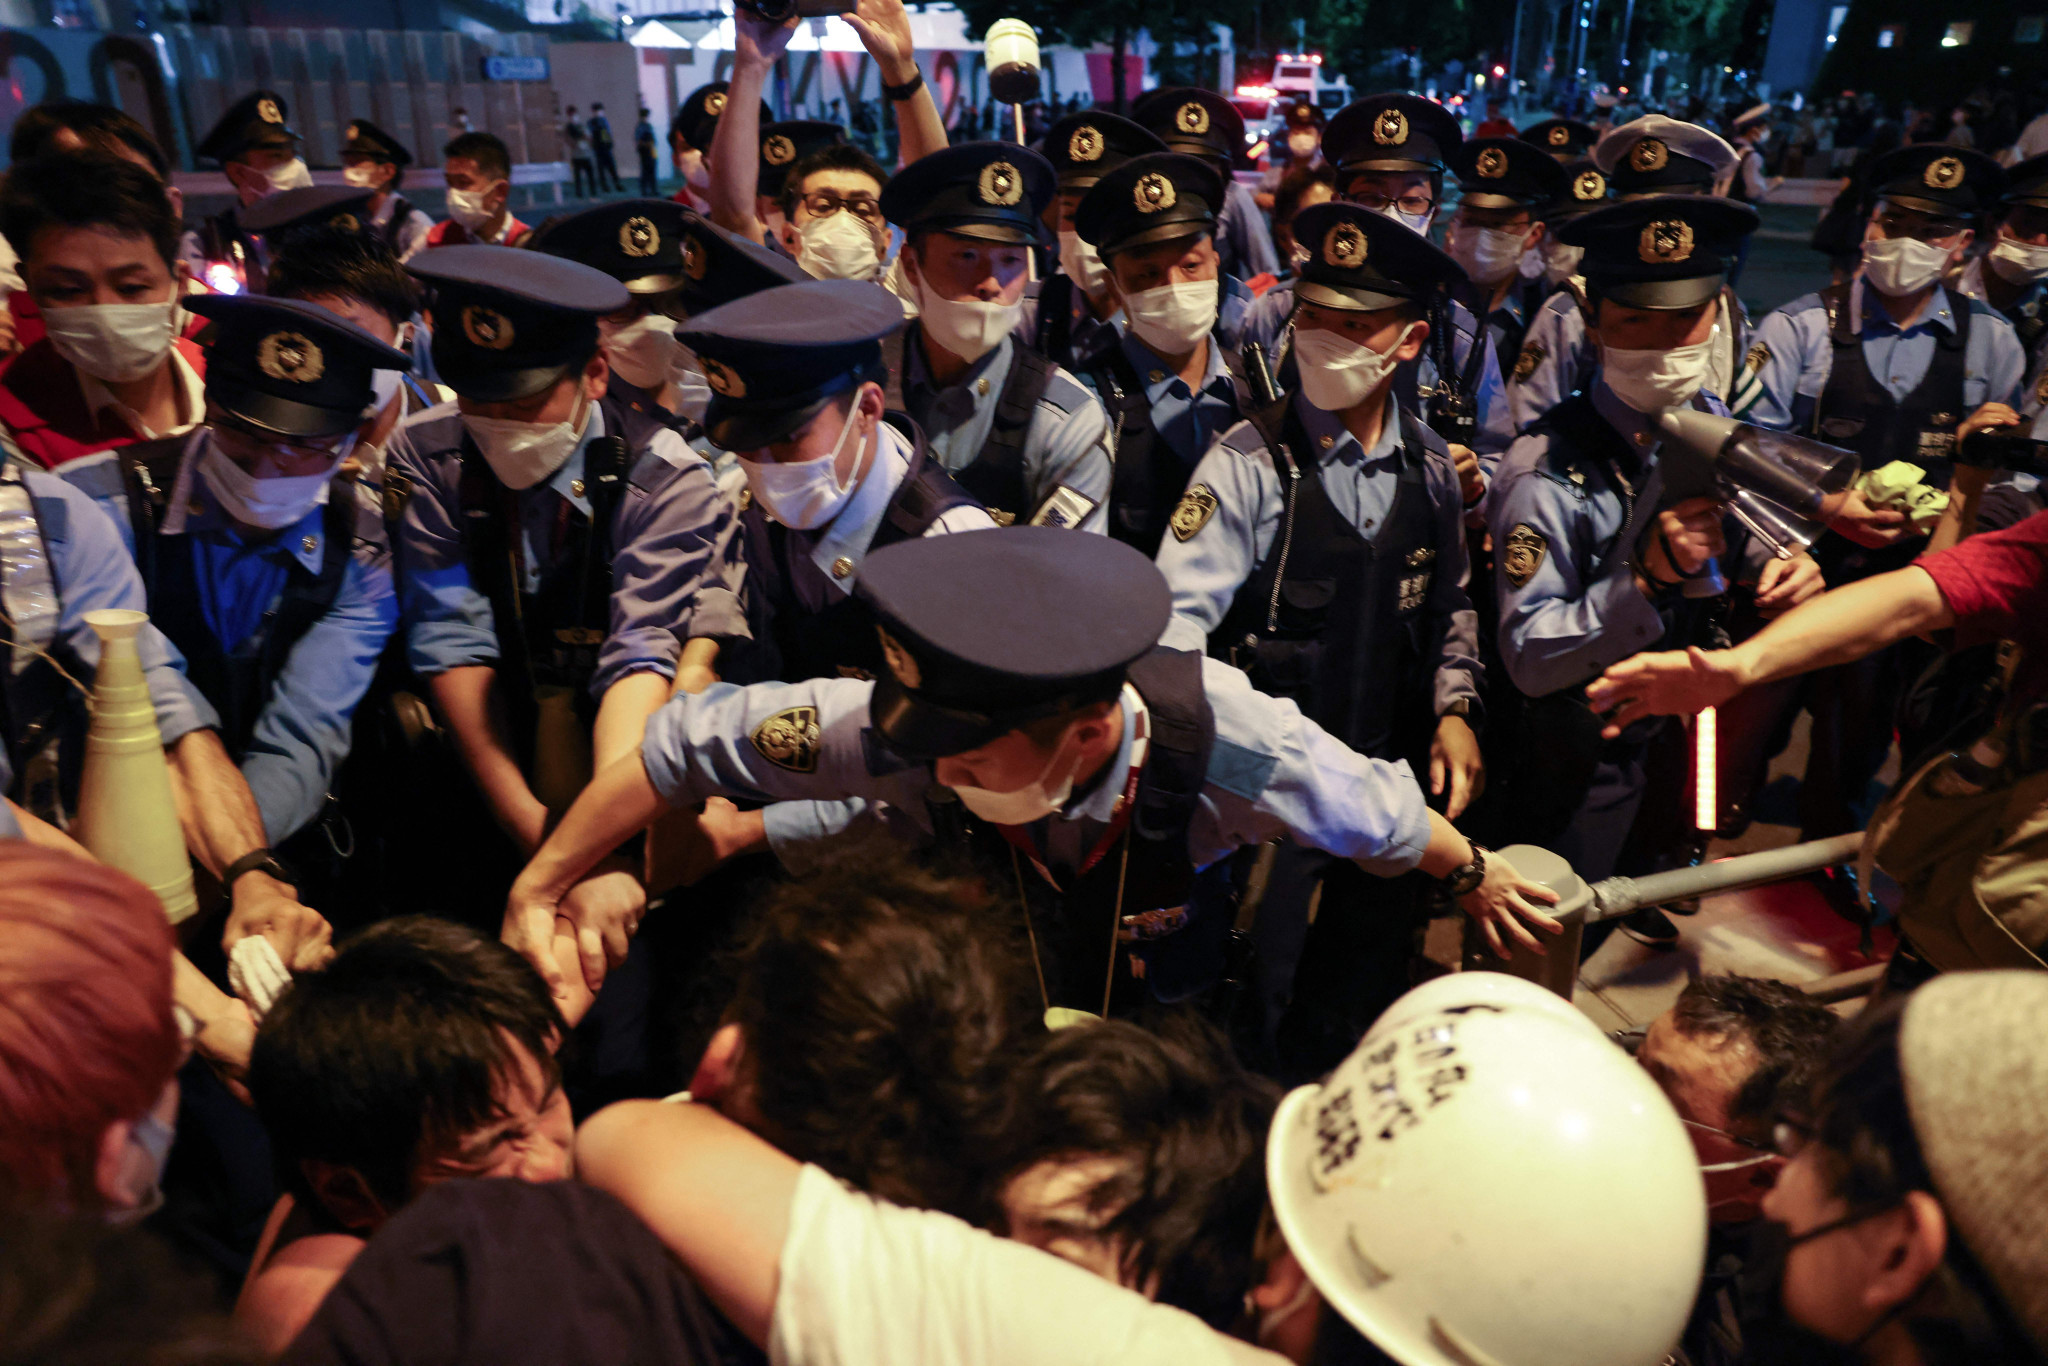 Security guards force protesters back as frustrations boiled over in Tokyo ©Getty Images